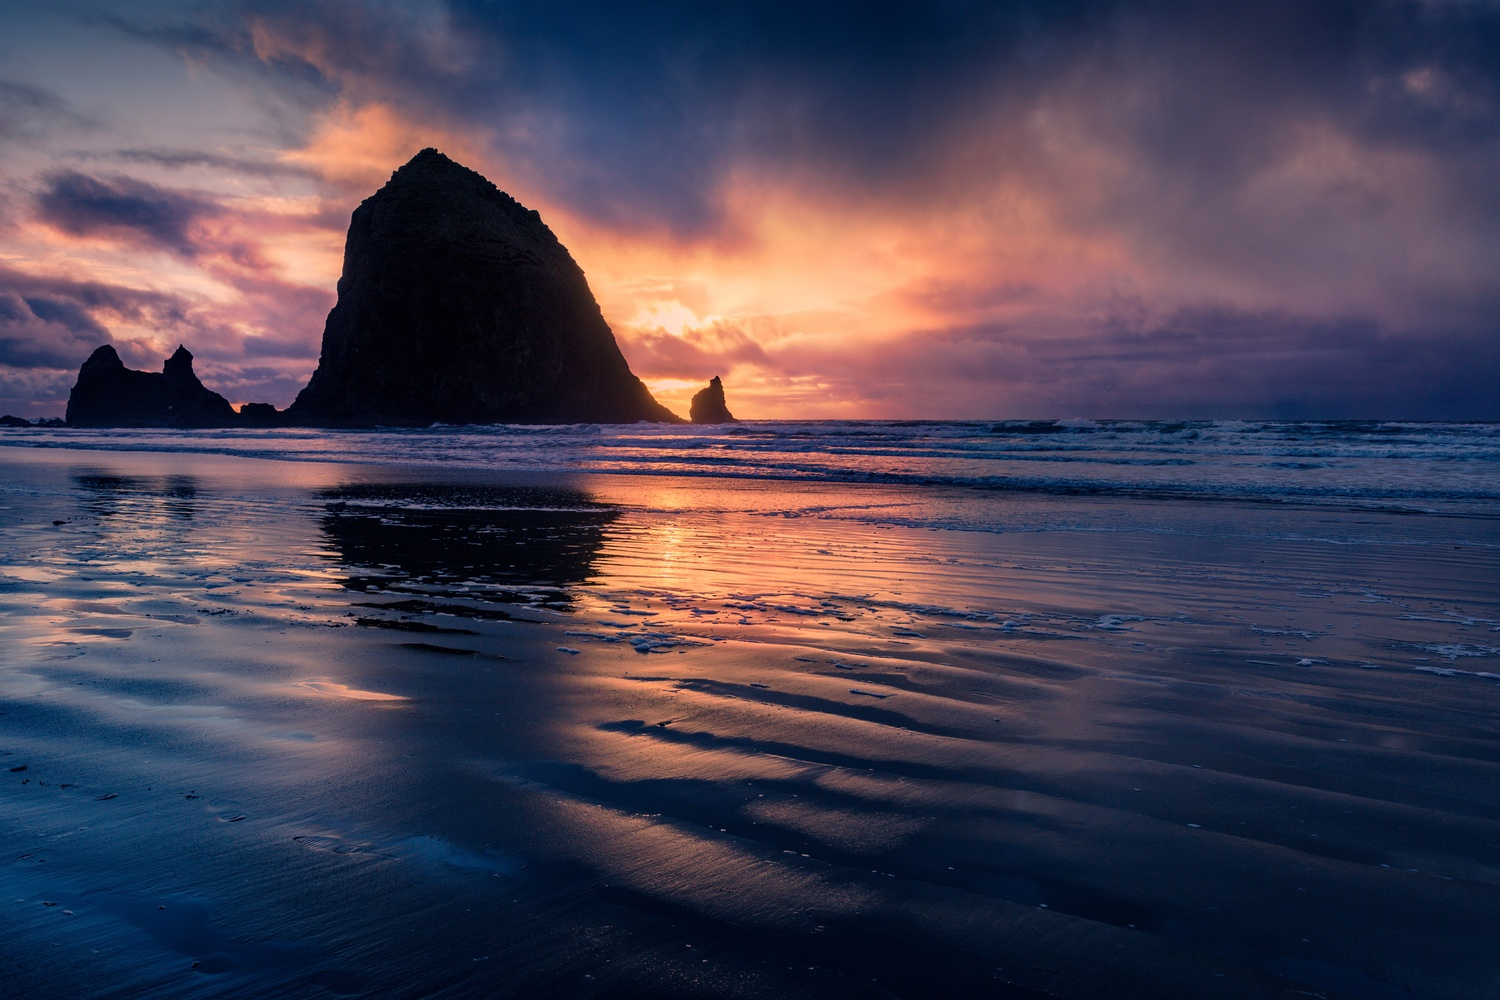 Cannon Beach Sunset by Eric Nordstrom